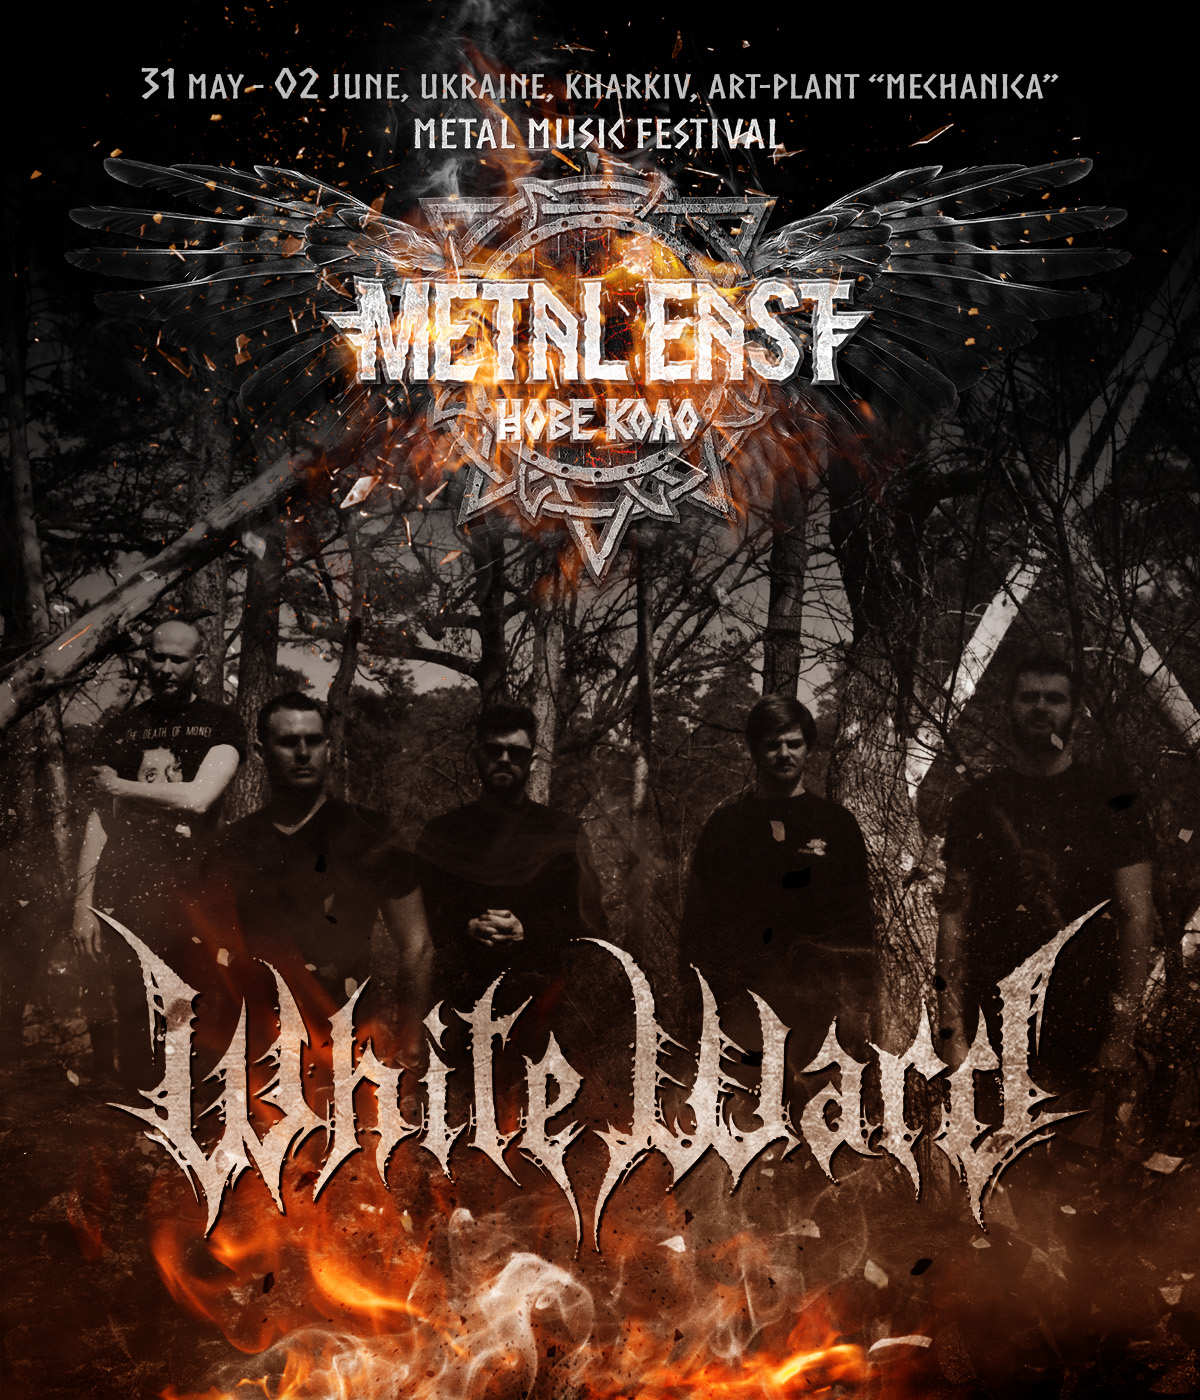 WHITE WARD from May 31rd to June 2nd of 2019 at Metal East Nove Kolo festival.